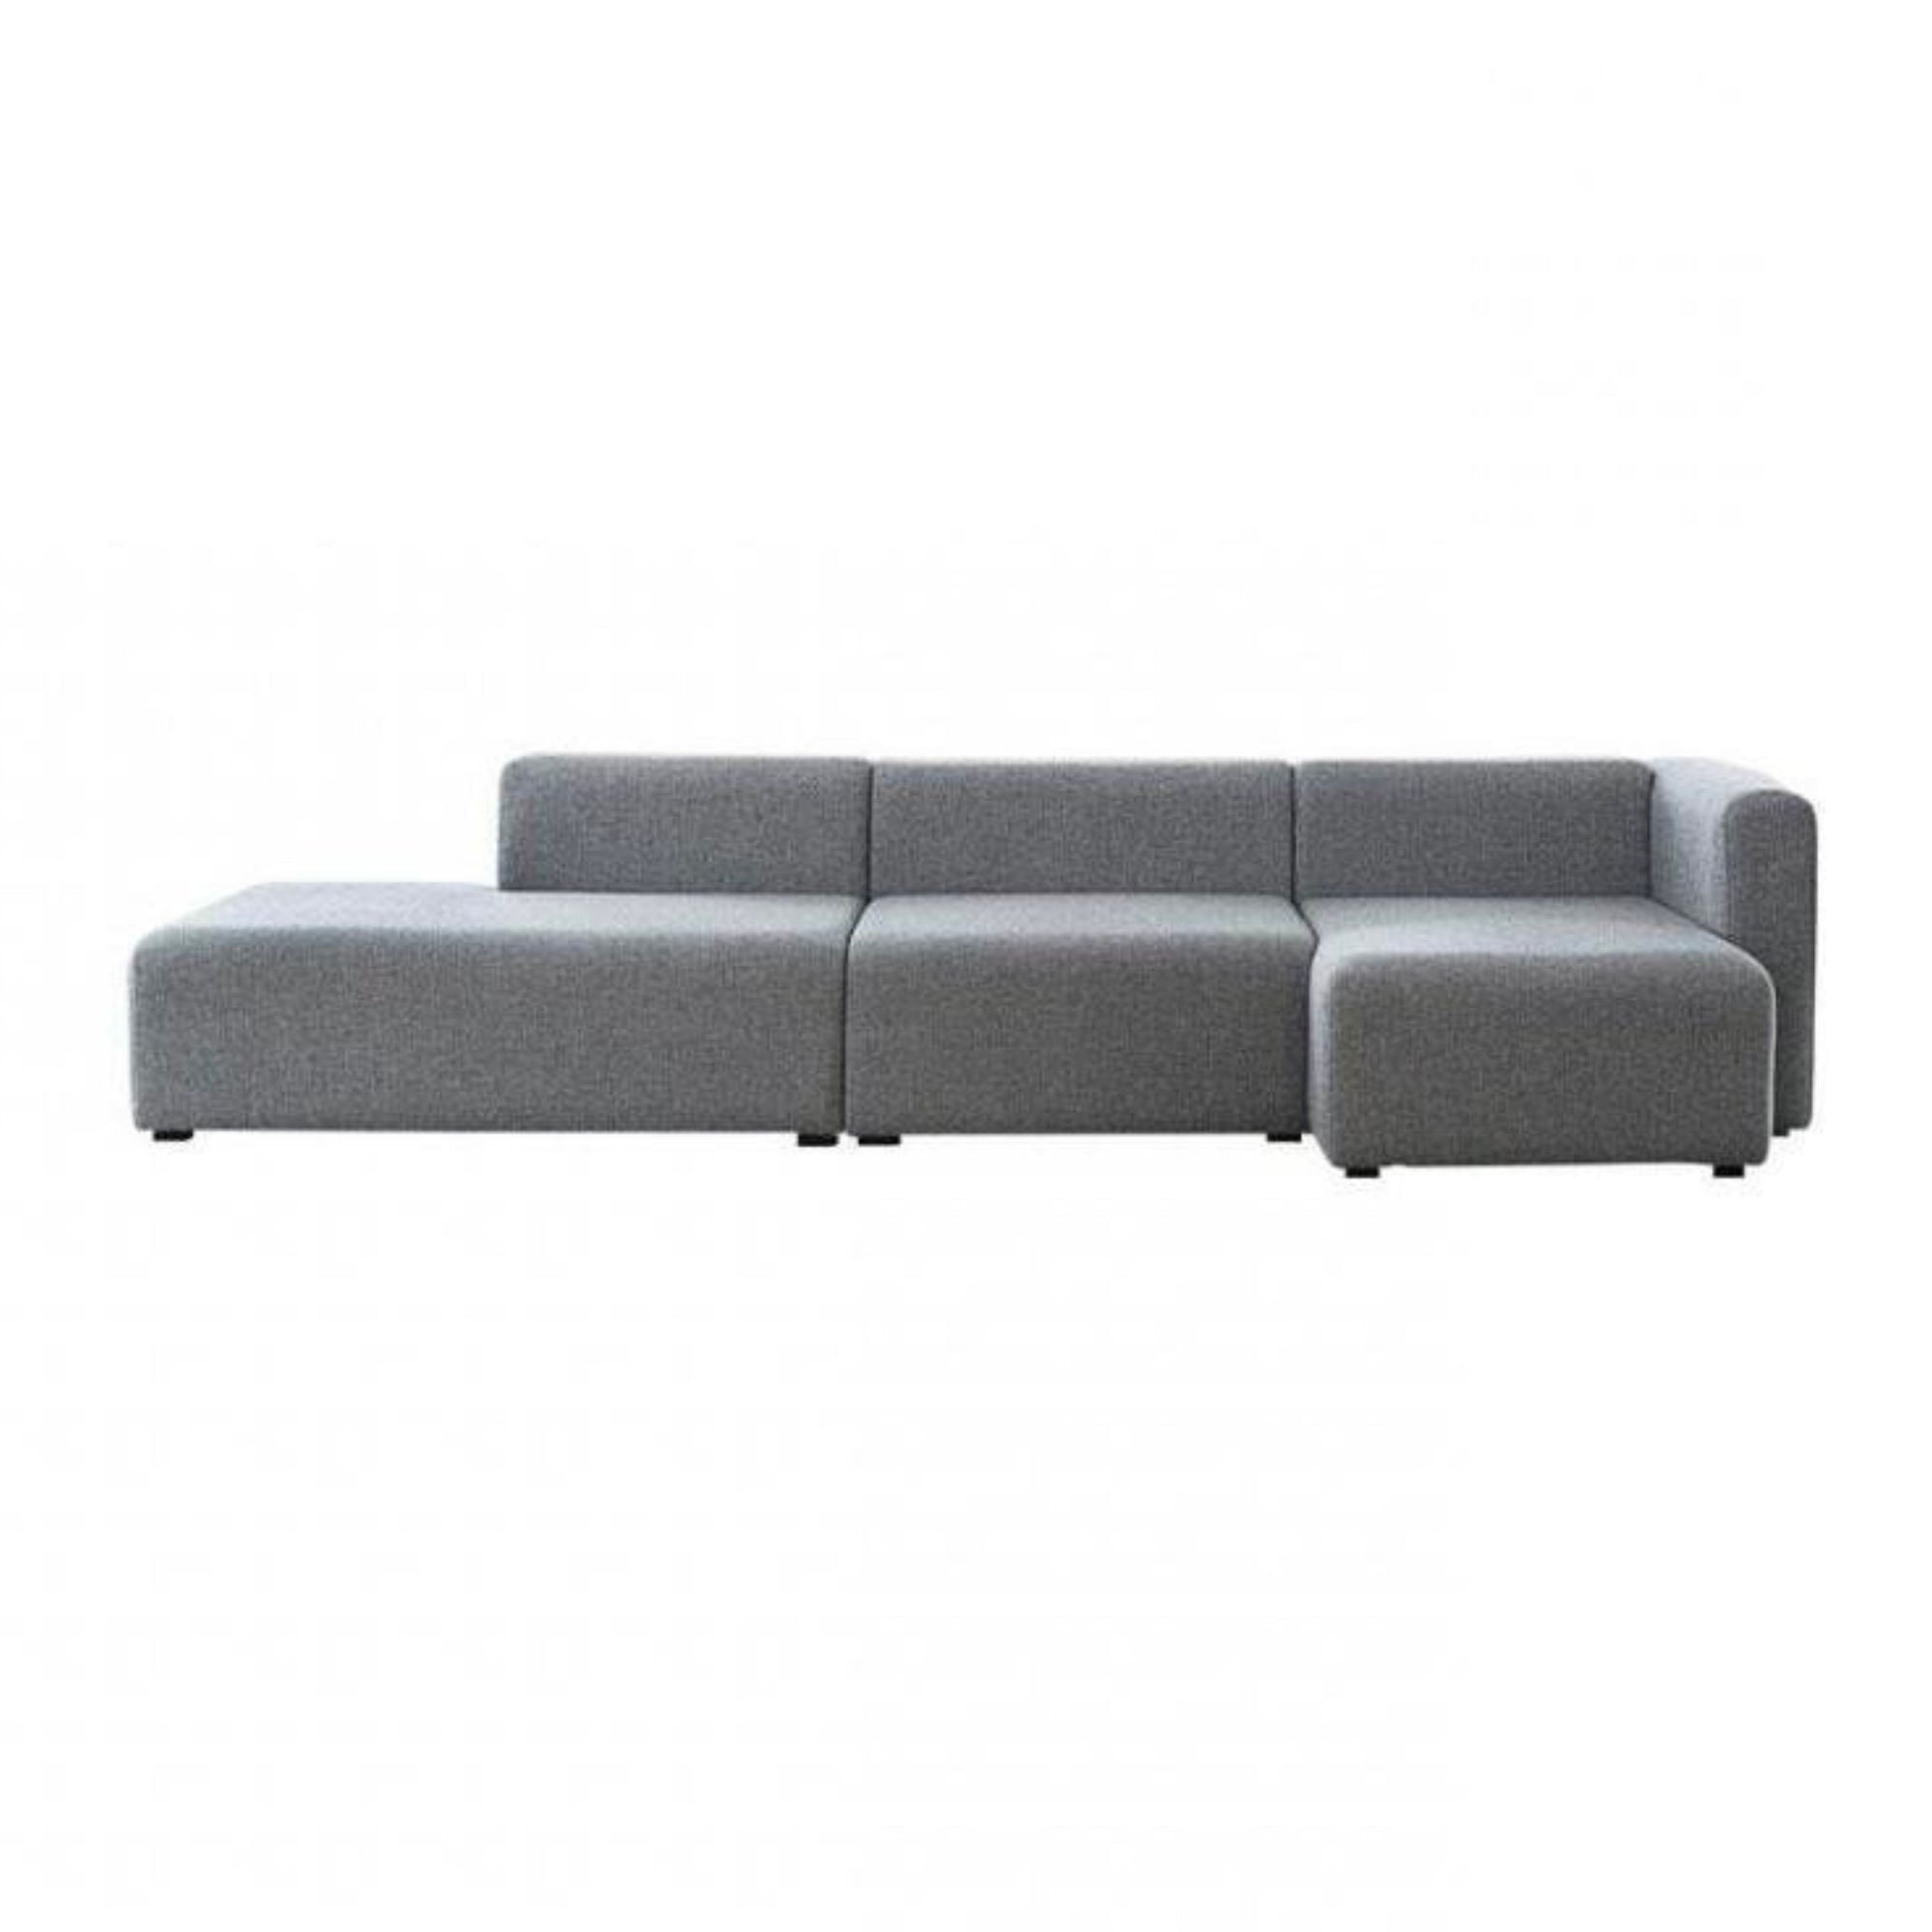 Hay Mags 3 seater chaise longue sofa, hallingdal 130